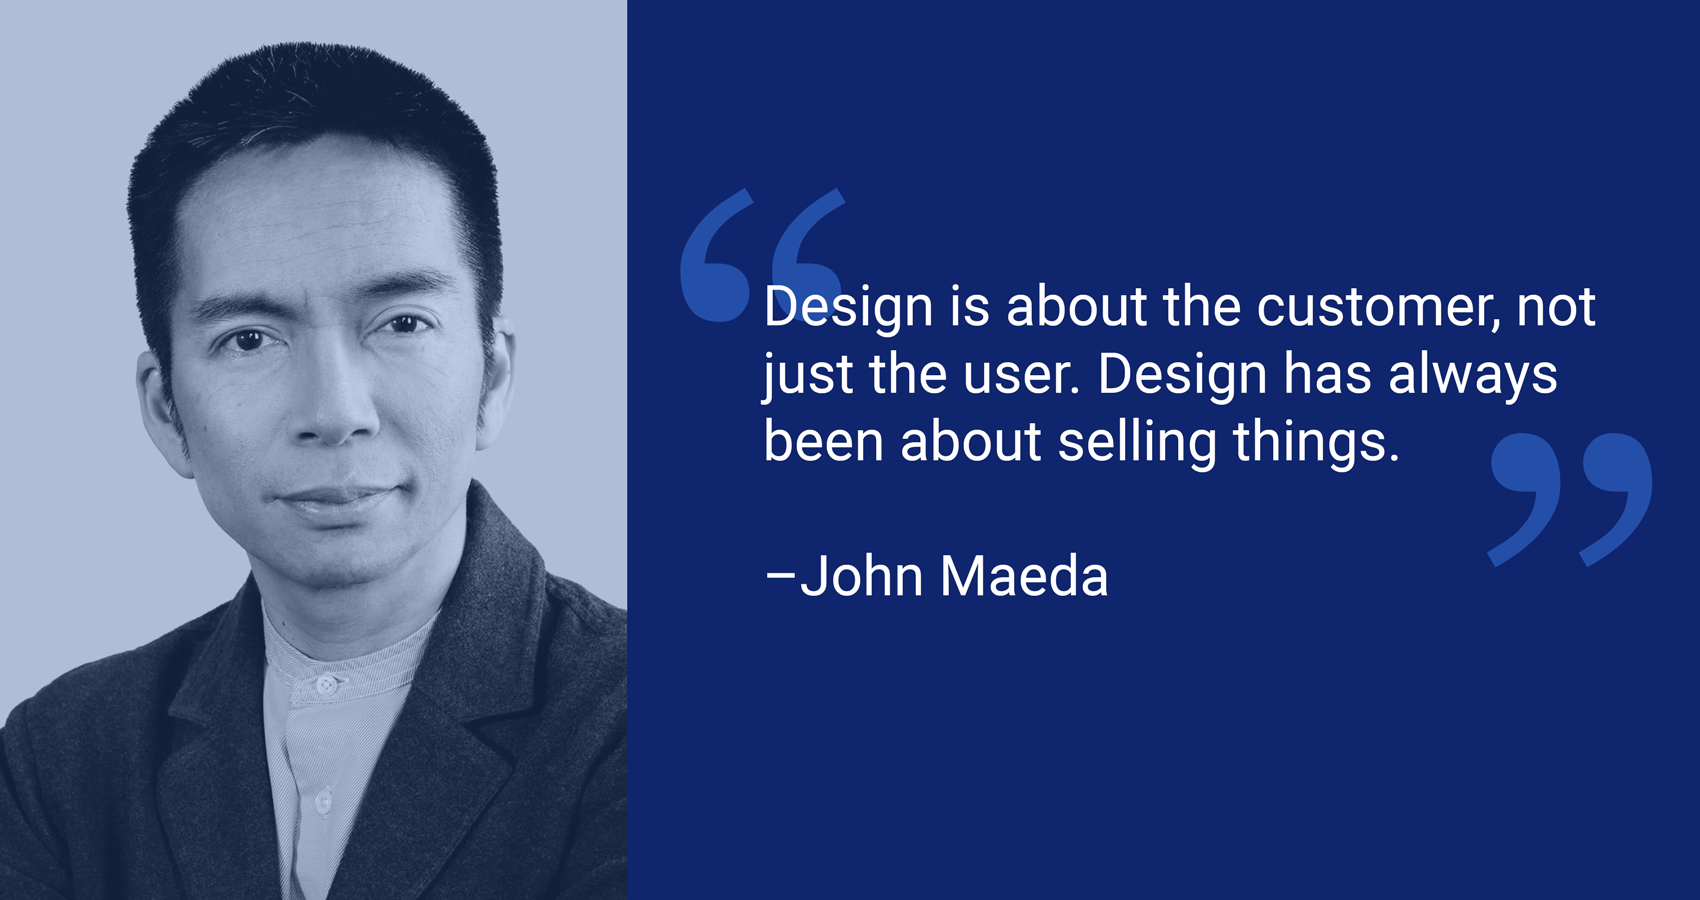 Strategy and design work together to create better experiences for the customer.